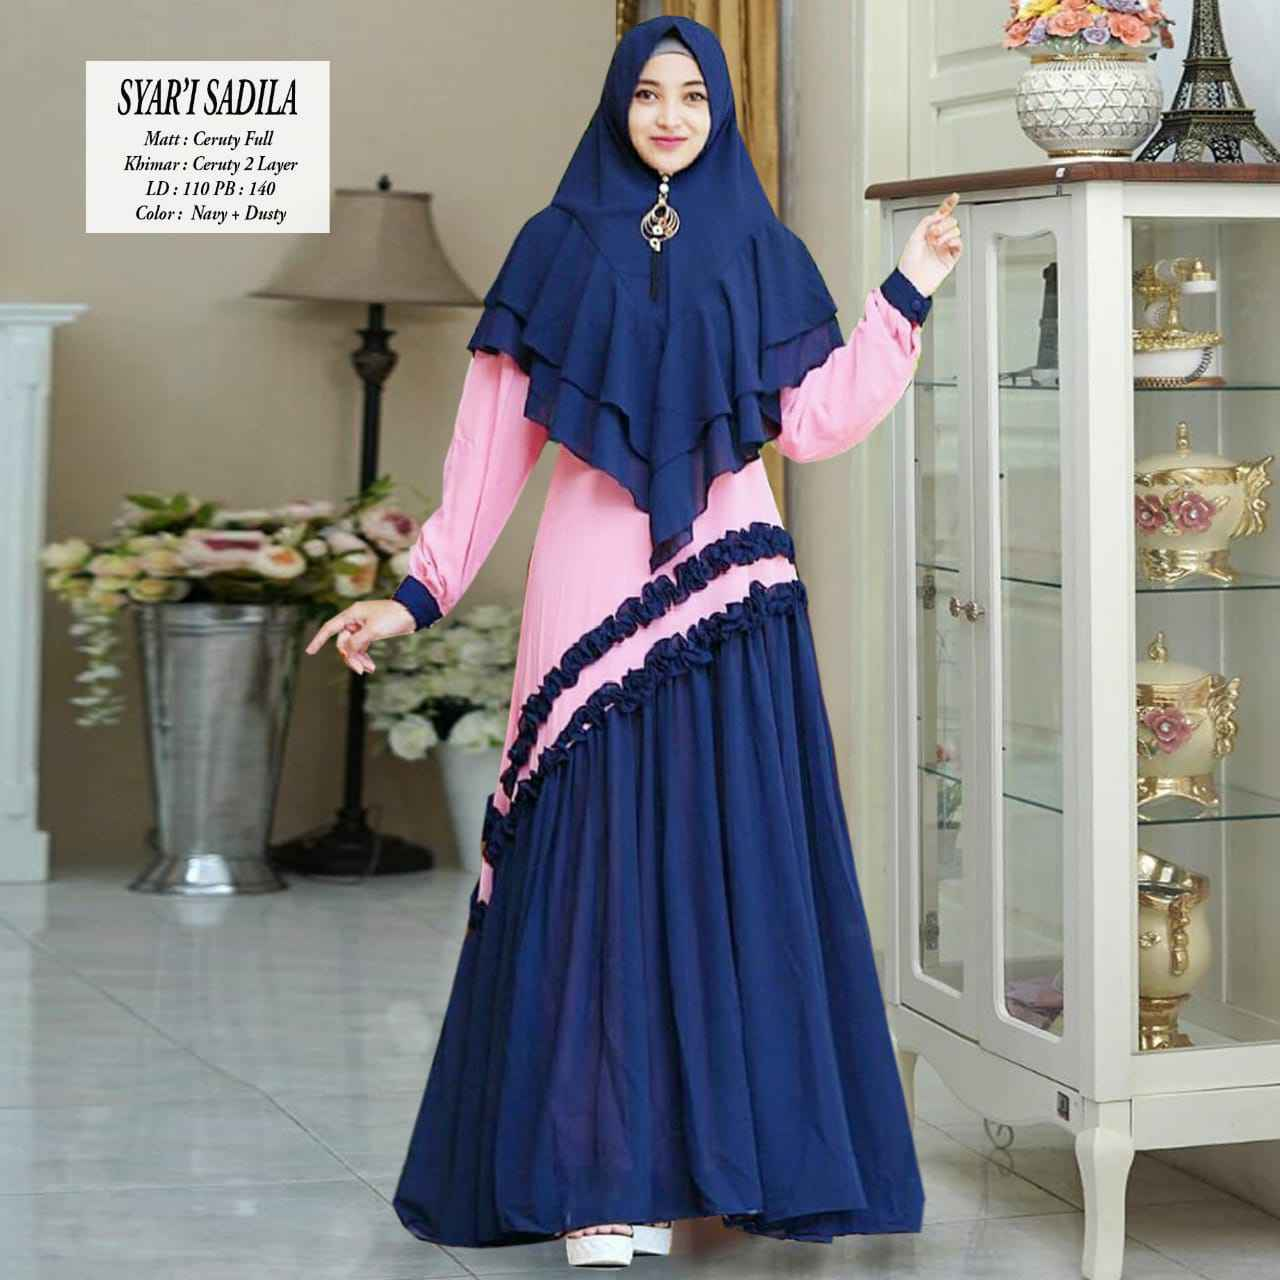 Gamis modern sadila navy dusty